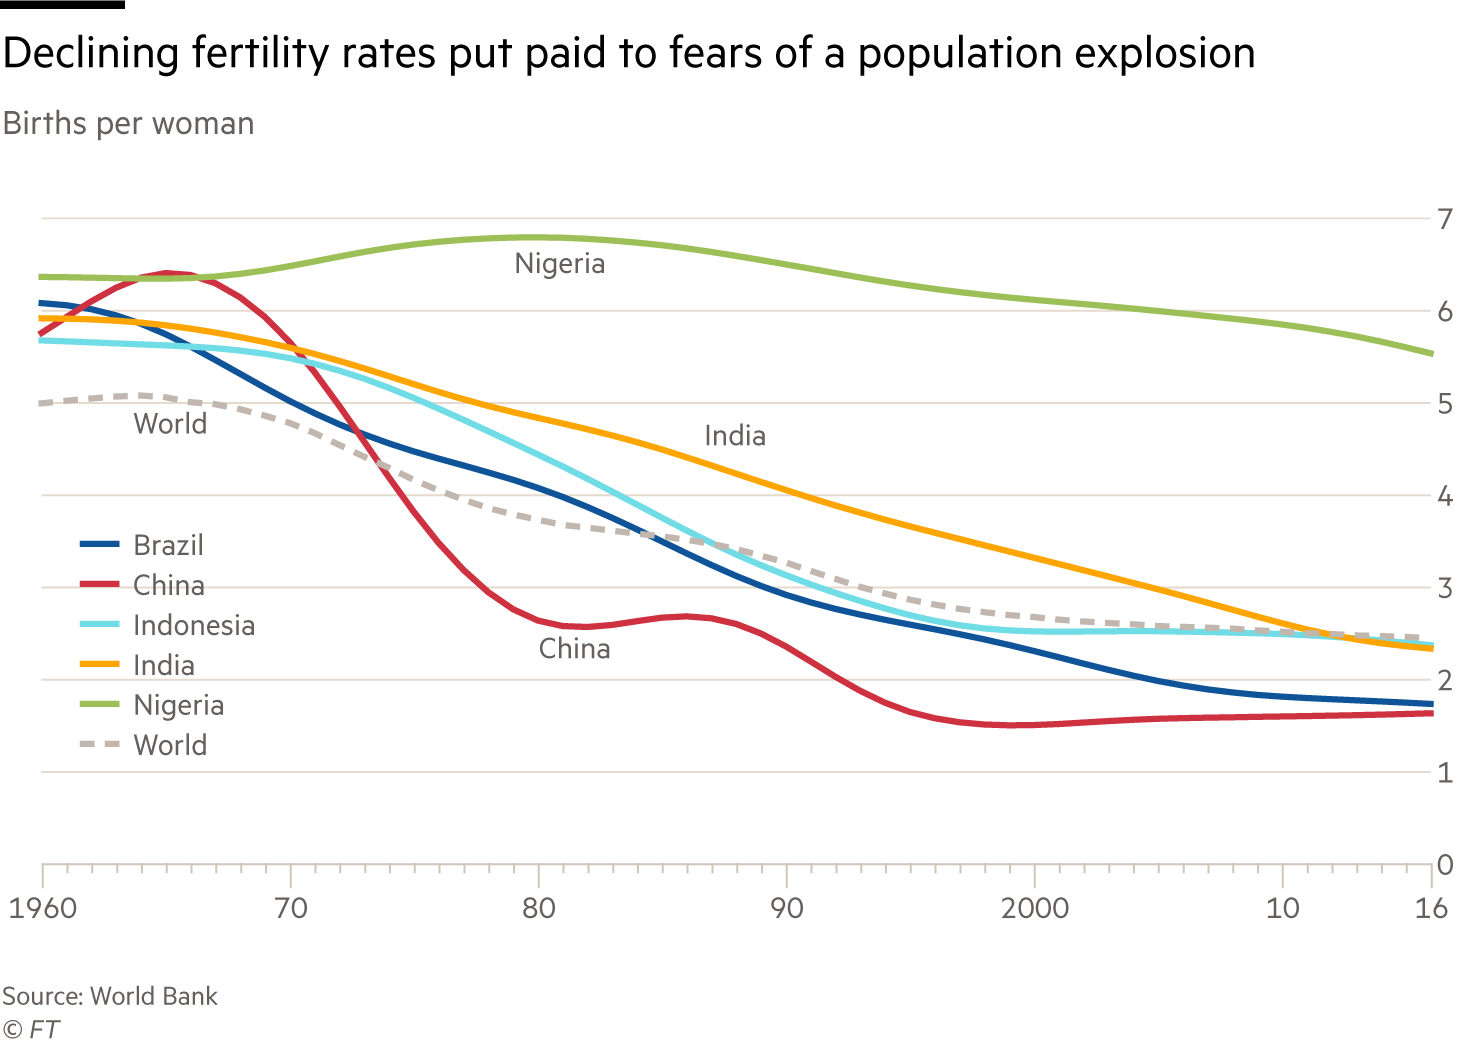 Chart showing declining global fertility rates